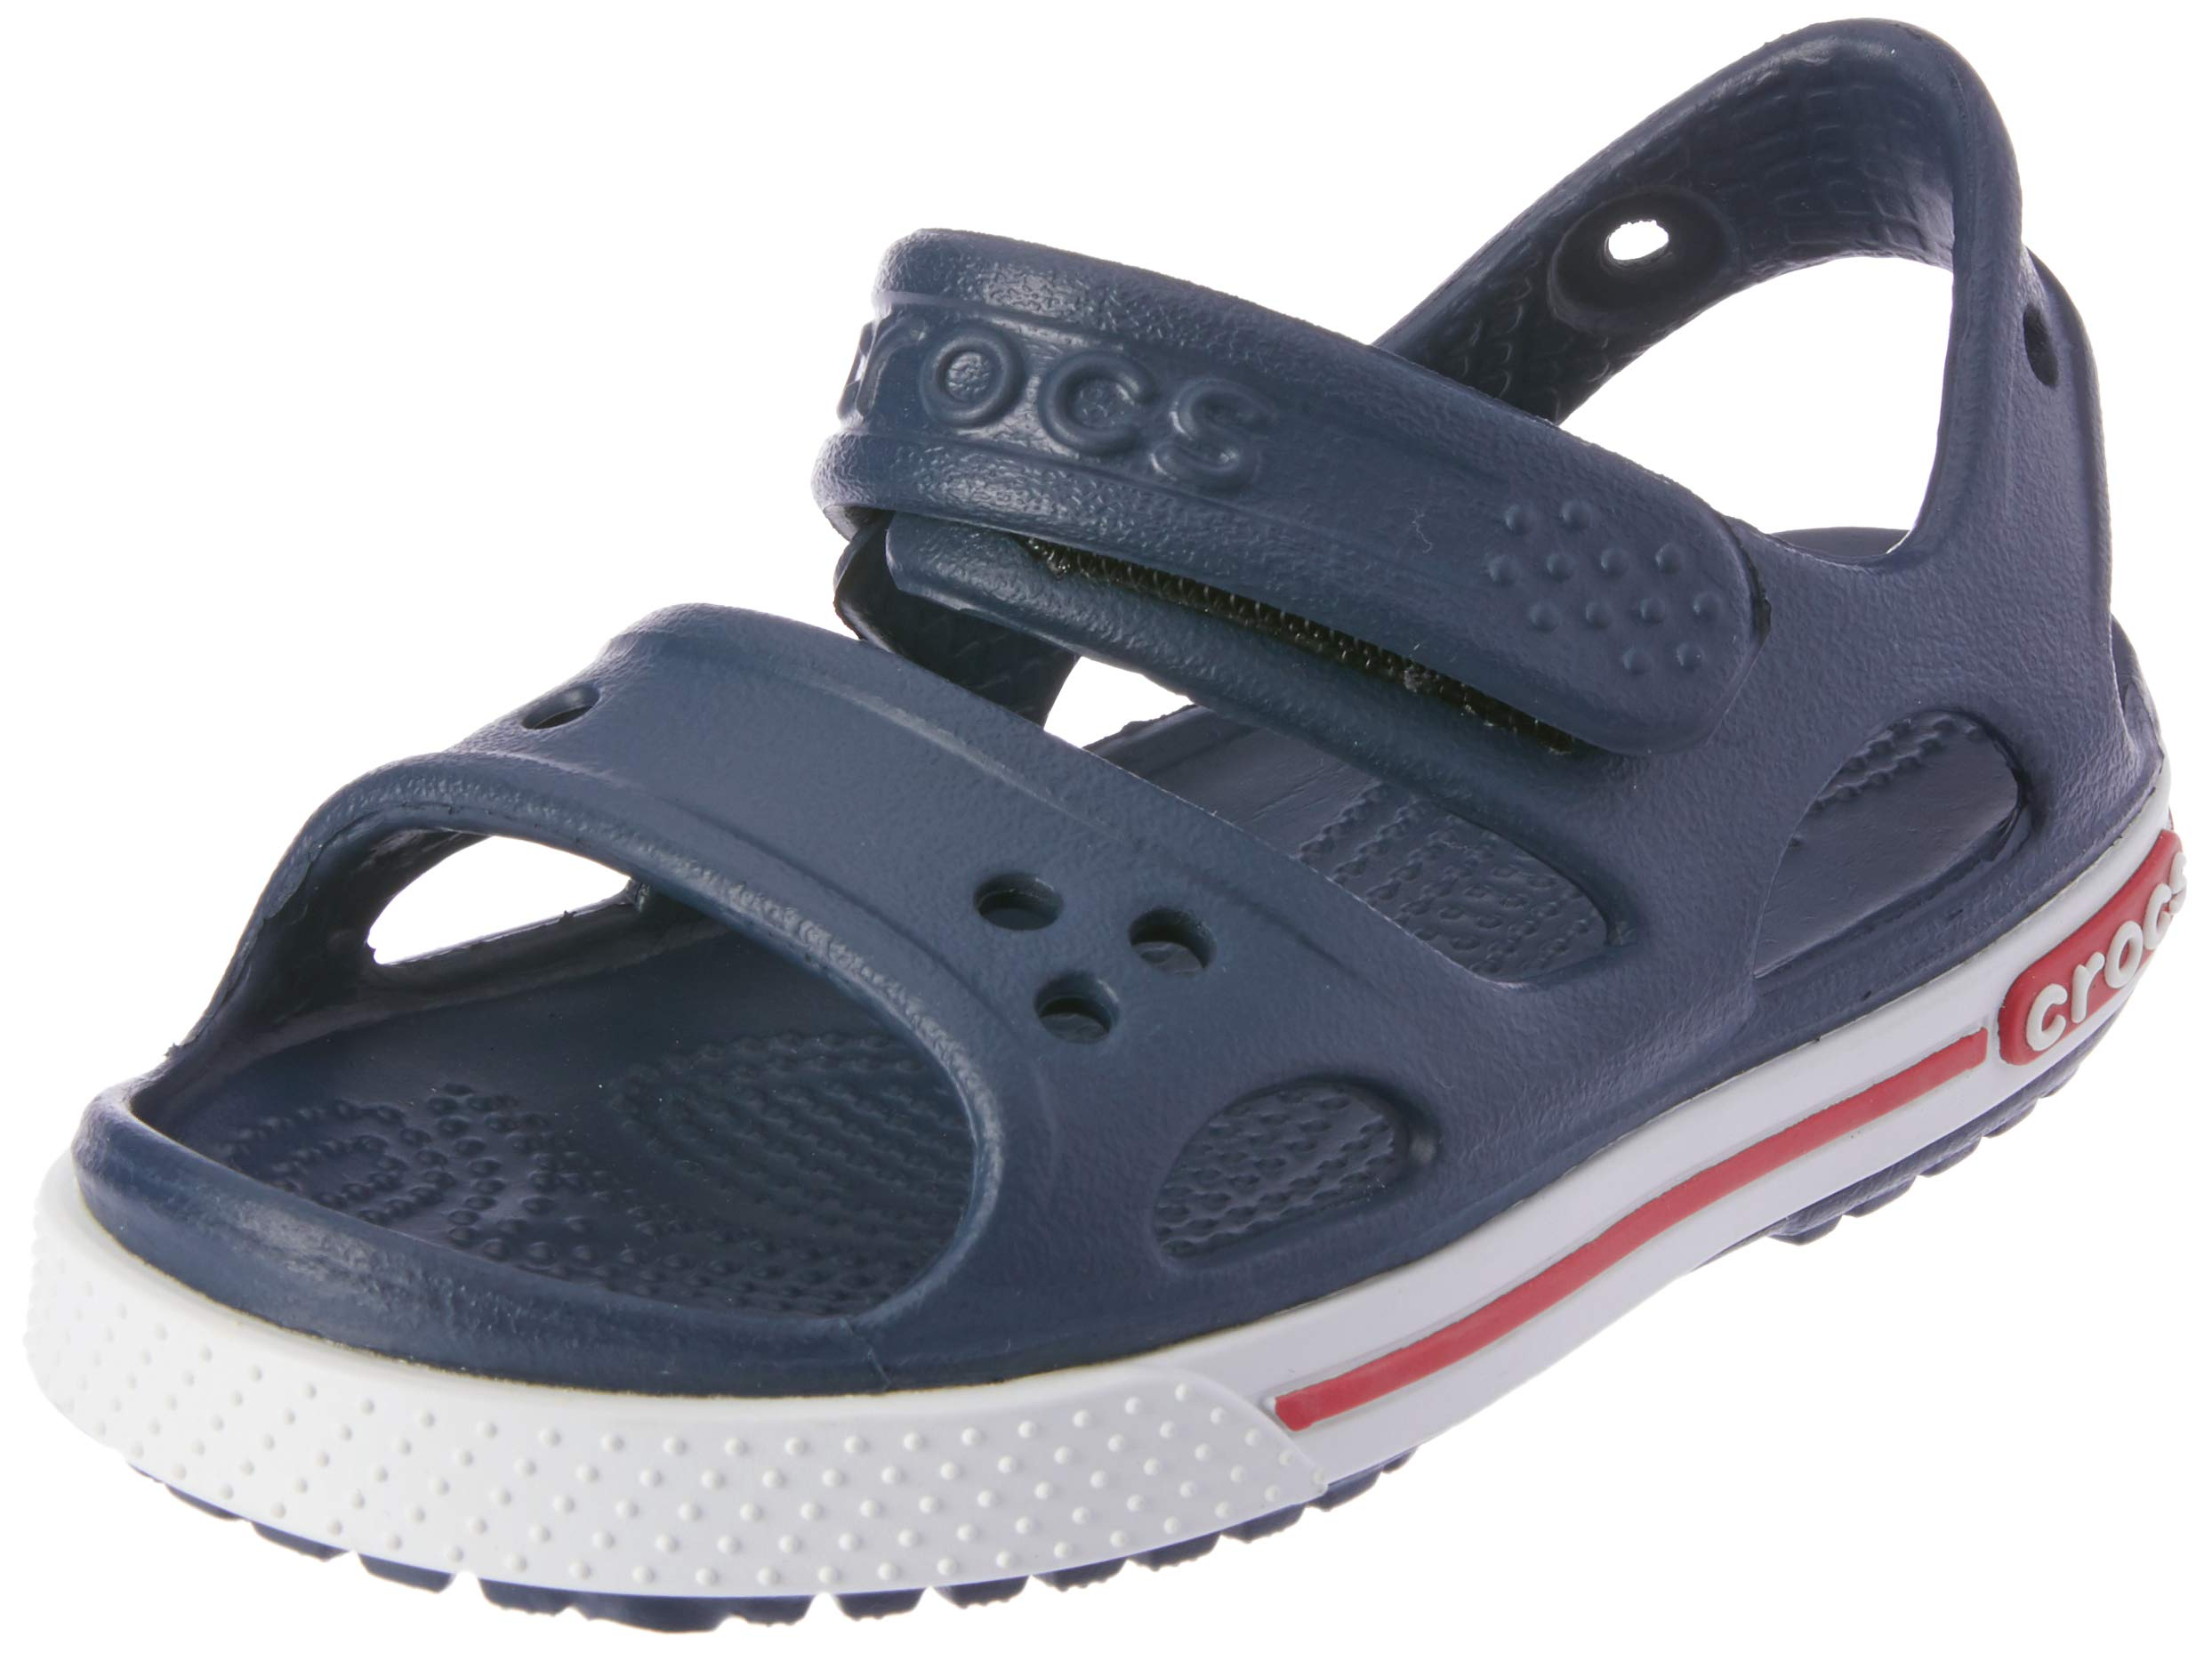 33025a31b96c Galleon - Crocs Kid s Boys And Girls Crocband II Sandal